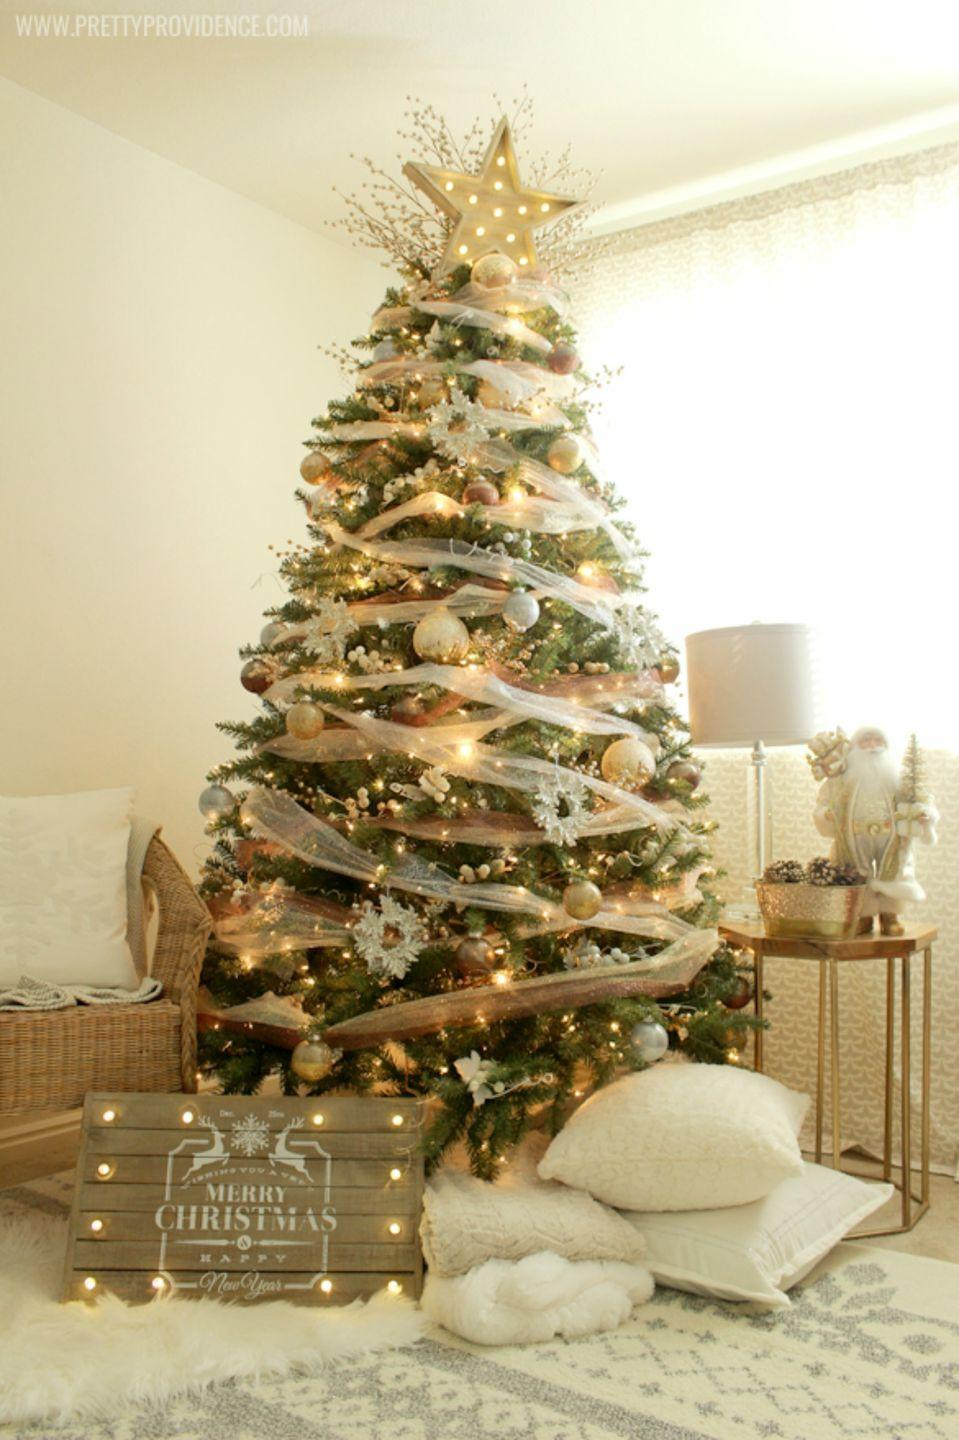 """<p>If you're overwhelmed with red and green during the holidays, give your living room an elegant touch soft white and gold accents with this decorated tree idea. <br></p><p><em><strong>Get the tutorial at </strong><strong><a href=""""http://prettyprovidence.com/whimsical-precious-metals-christmas-tree/"""" rel=""""nofollow noopener"""" target=""""_blank"""" data-ylk=""""slk:Pretty Providence."""" class=""""link rapid-noclick-resp"""">Pretty Providence.</a></strong></em></p><p><a class=""""link rapid-noclick-resp"""" href=""""https://www.amazon.com/Christmas-Decorative-Shatterproof-Pendants-Ornaments/dp/B01M2554EX/?tag=syn-yahoo-20&ascsubtag=%5Bartid%7C10070.g.2025%5Bsrc%7Cyahoo-us"""" rel=""""nofollow noopener"""" target=""""_blank"""" data-ylk=""""slk:BUY GOLD ORNAMENTS"""">BUY GOLD ORNAMENTS</a></p>"""